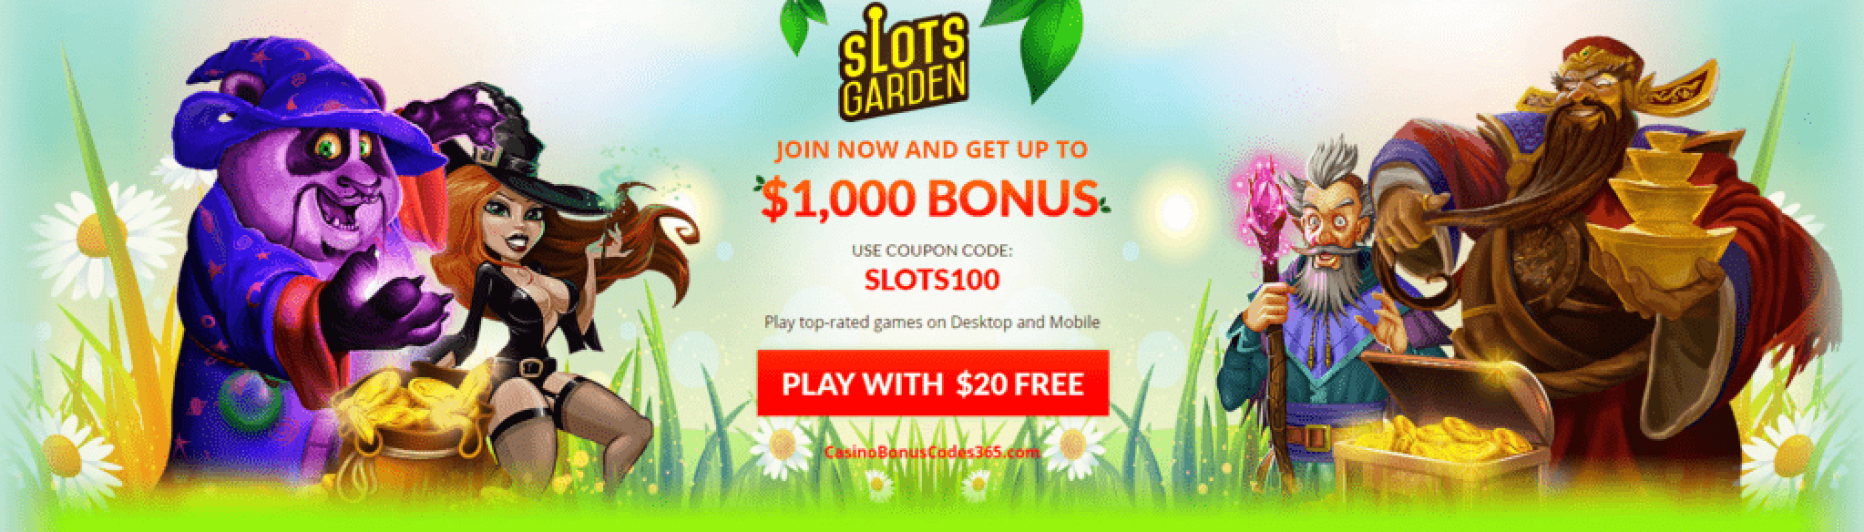 Slots Garden $1000 Welcome Bonus plus $20 No Deposit FREE Chip